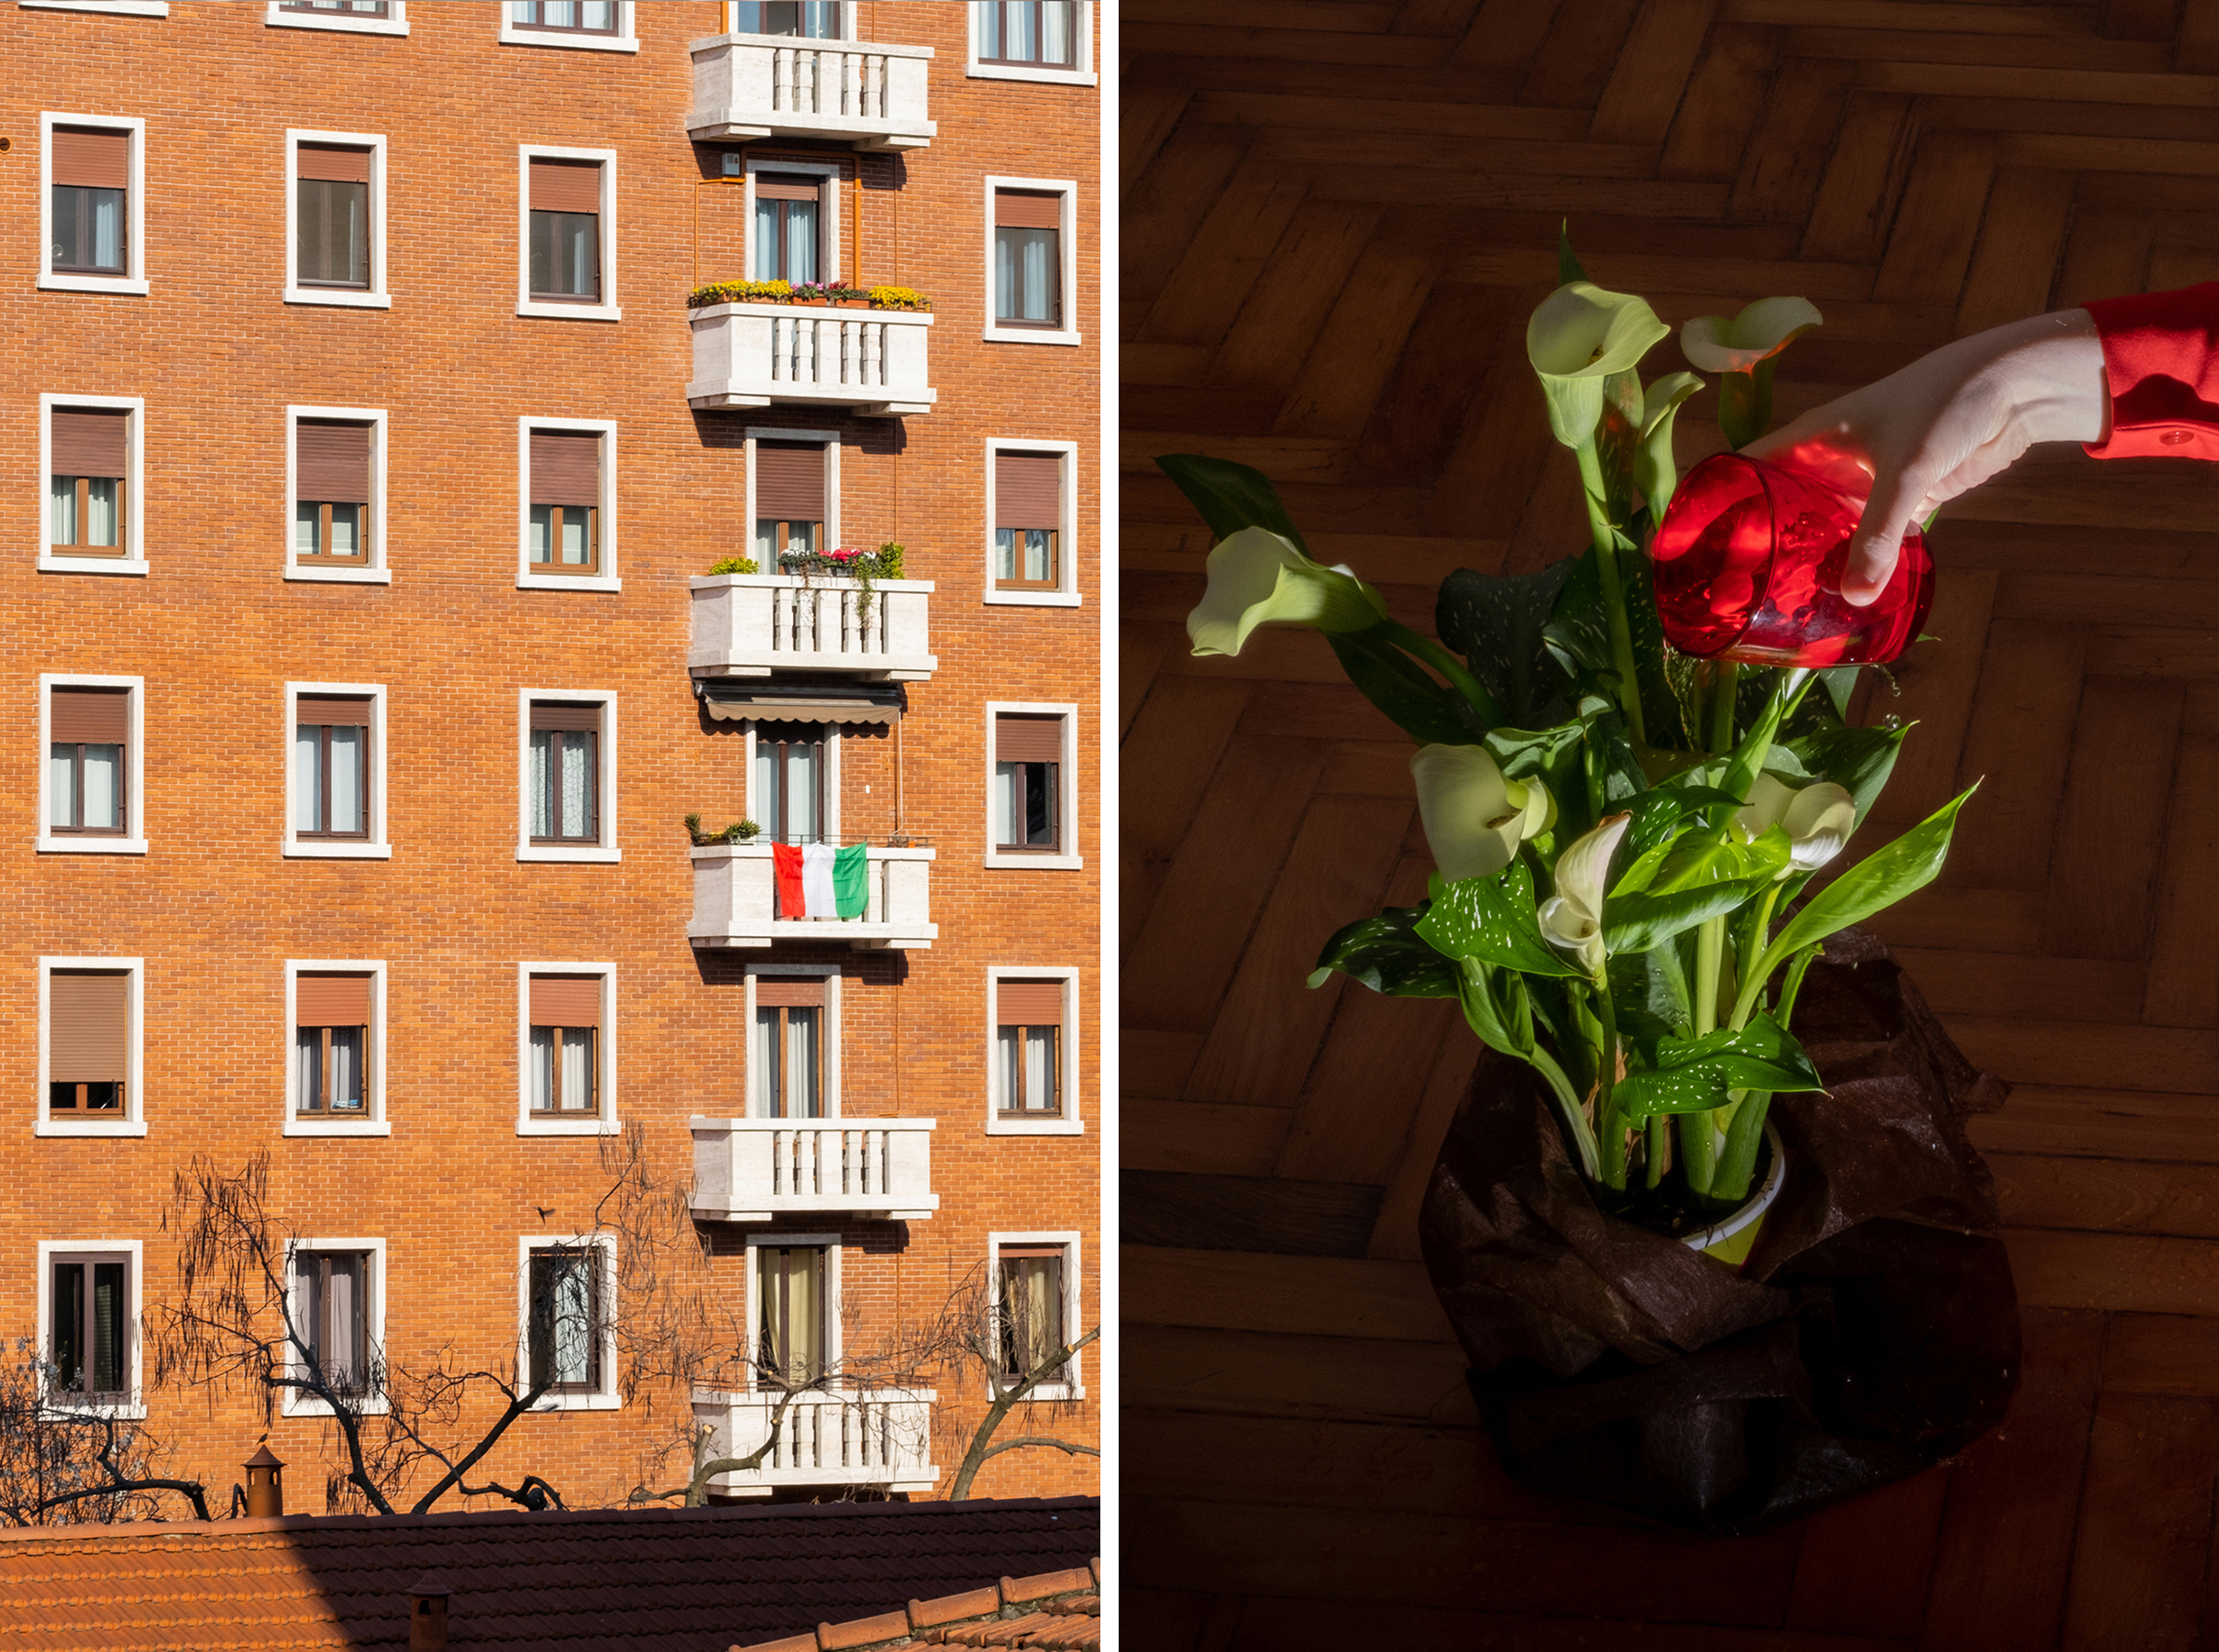 Left: 3:50 P.M. View from the balcony; Right: 3:40 P.M. Taking care of the plant